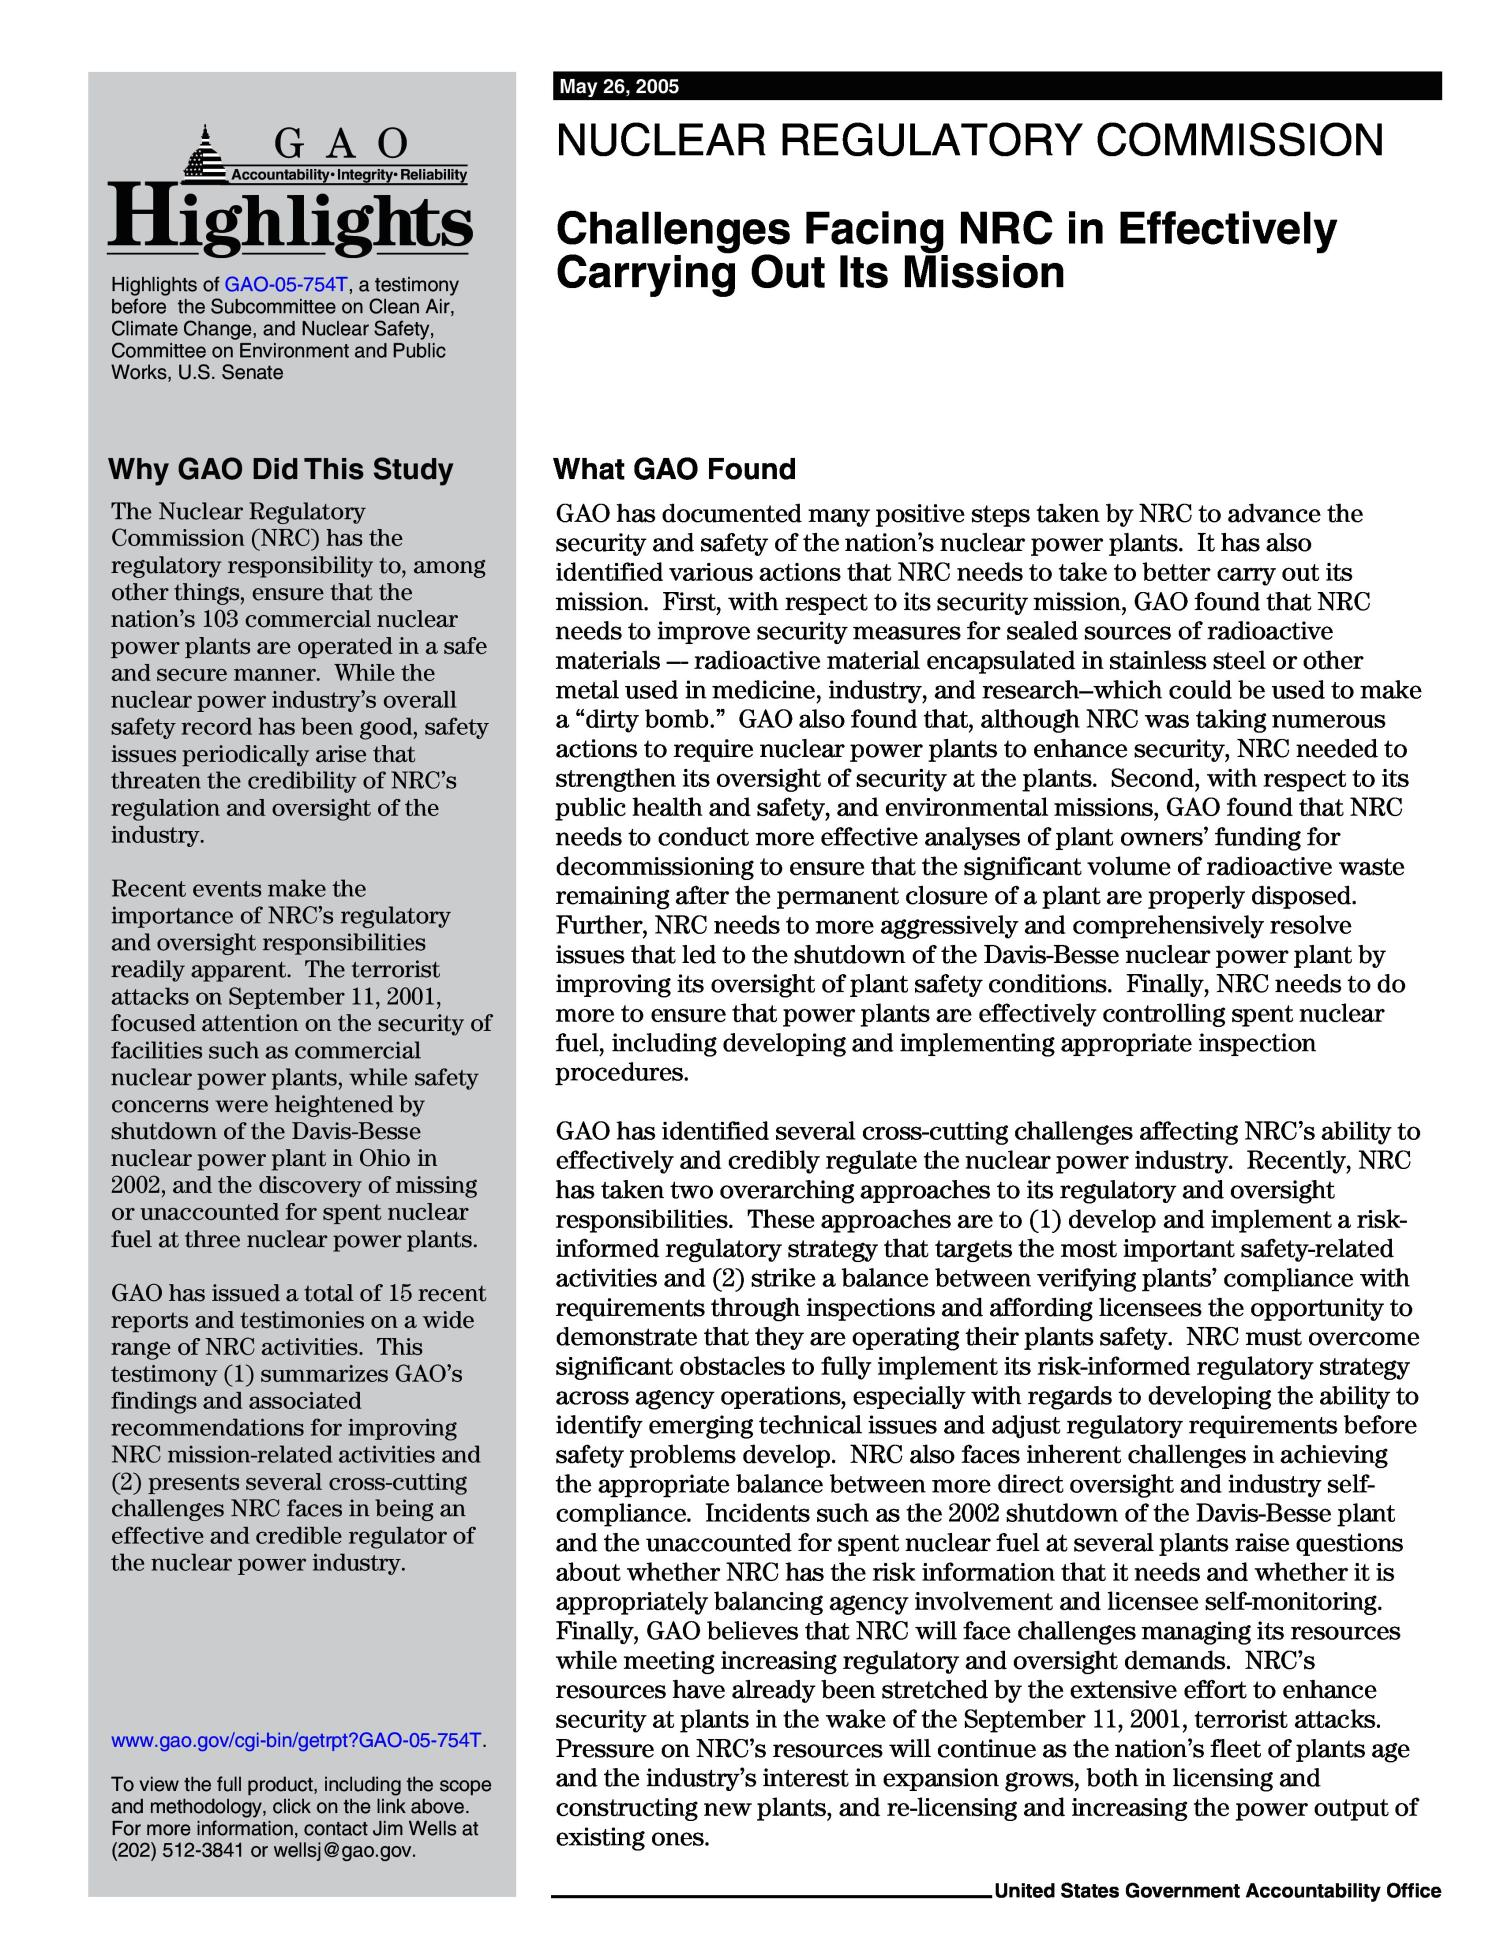 Nuclear Regulatory Commission: Challenges Facing NRC in Effectively Carrying Out Its Mission                                                                                                      [Sequence #]: 2 of 23